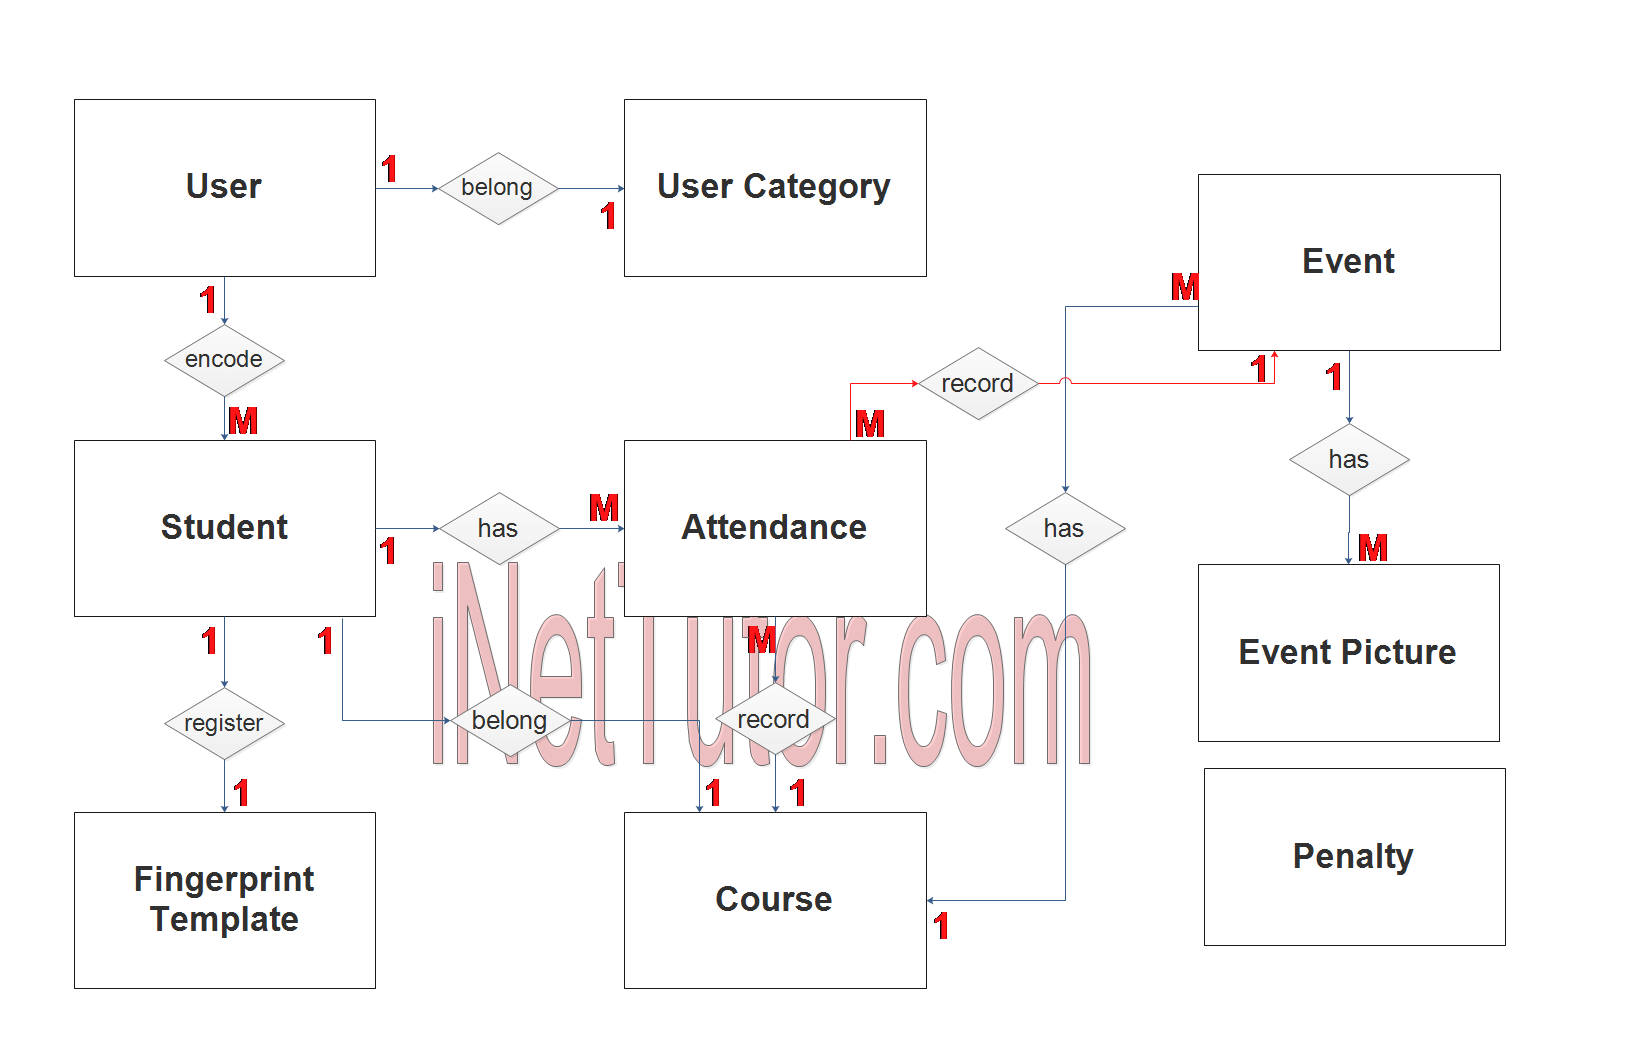 Biometric Based Attendance System ER Diagram - Step 2 Table Relationship